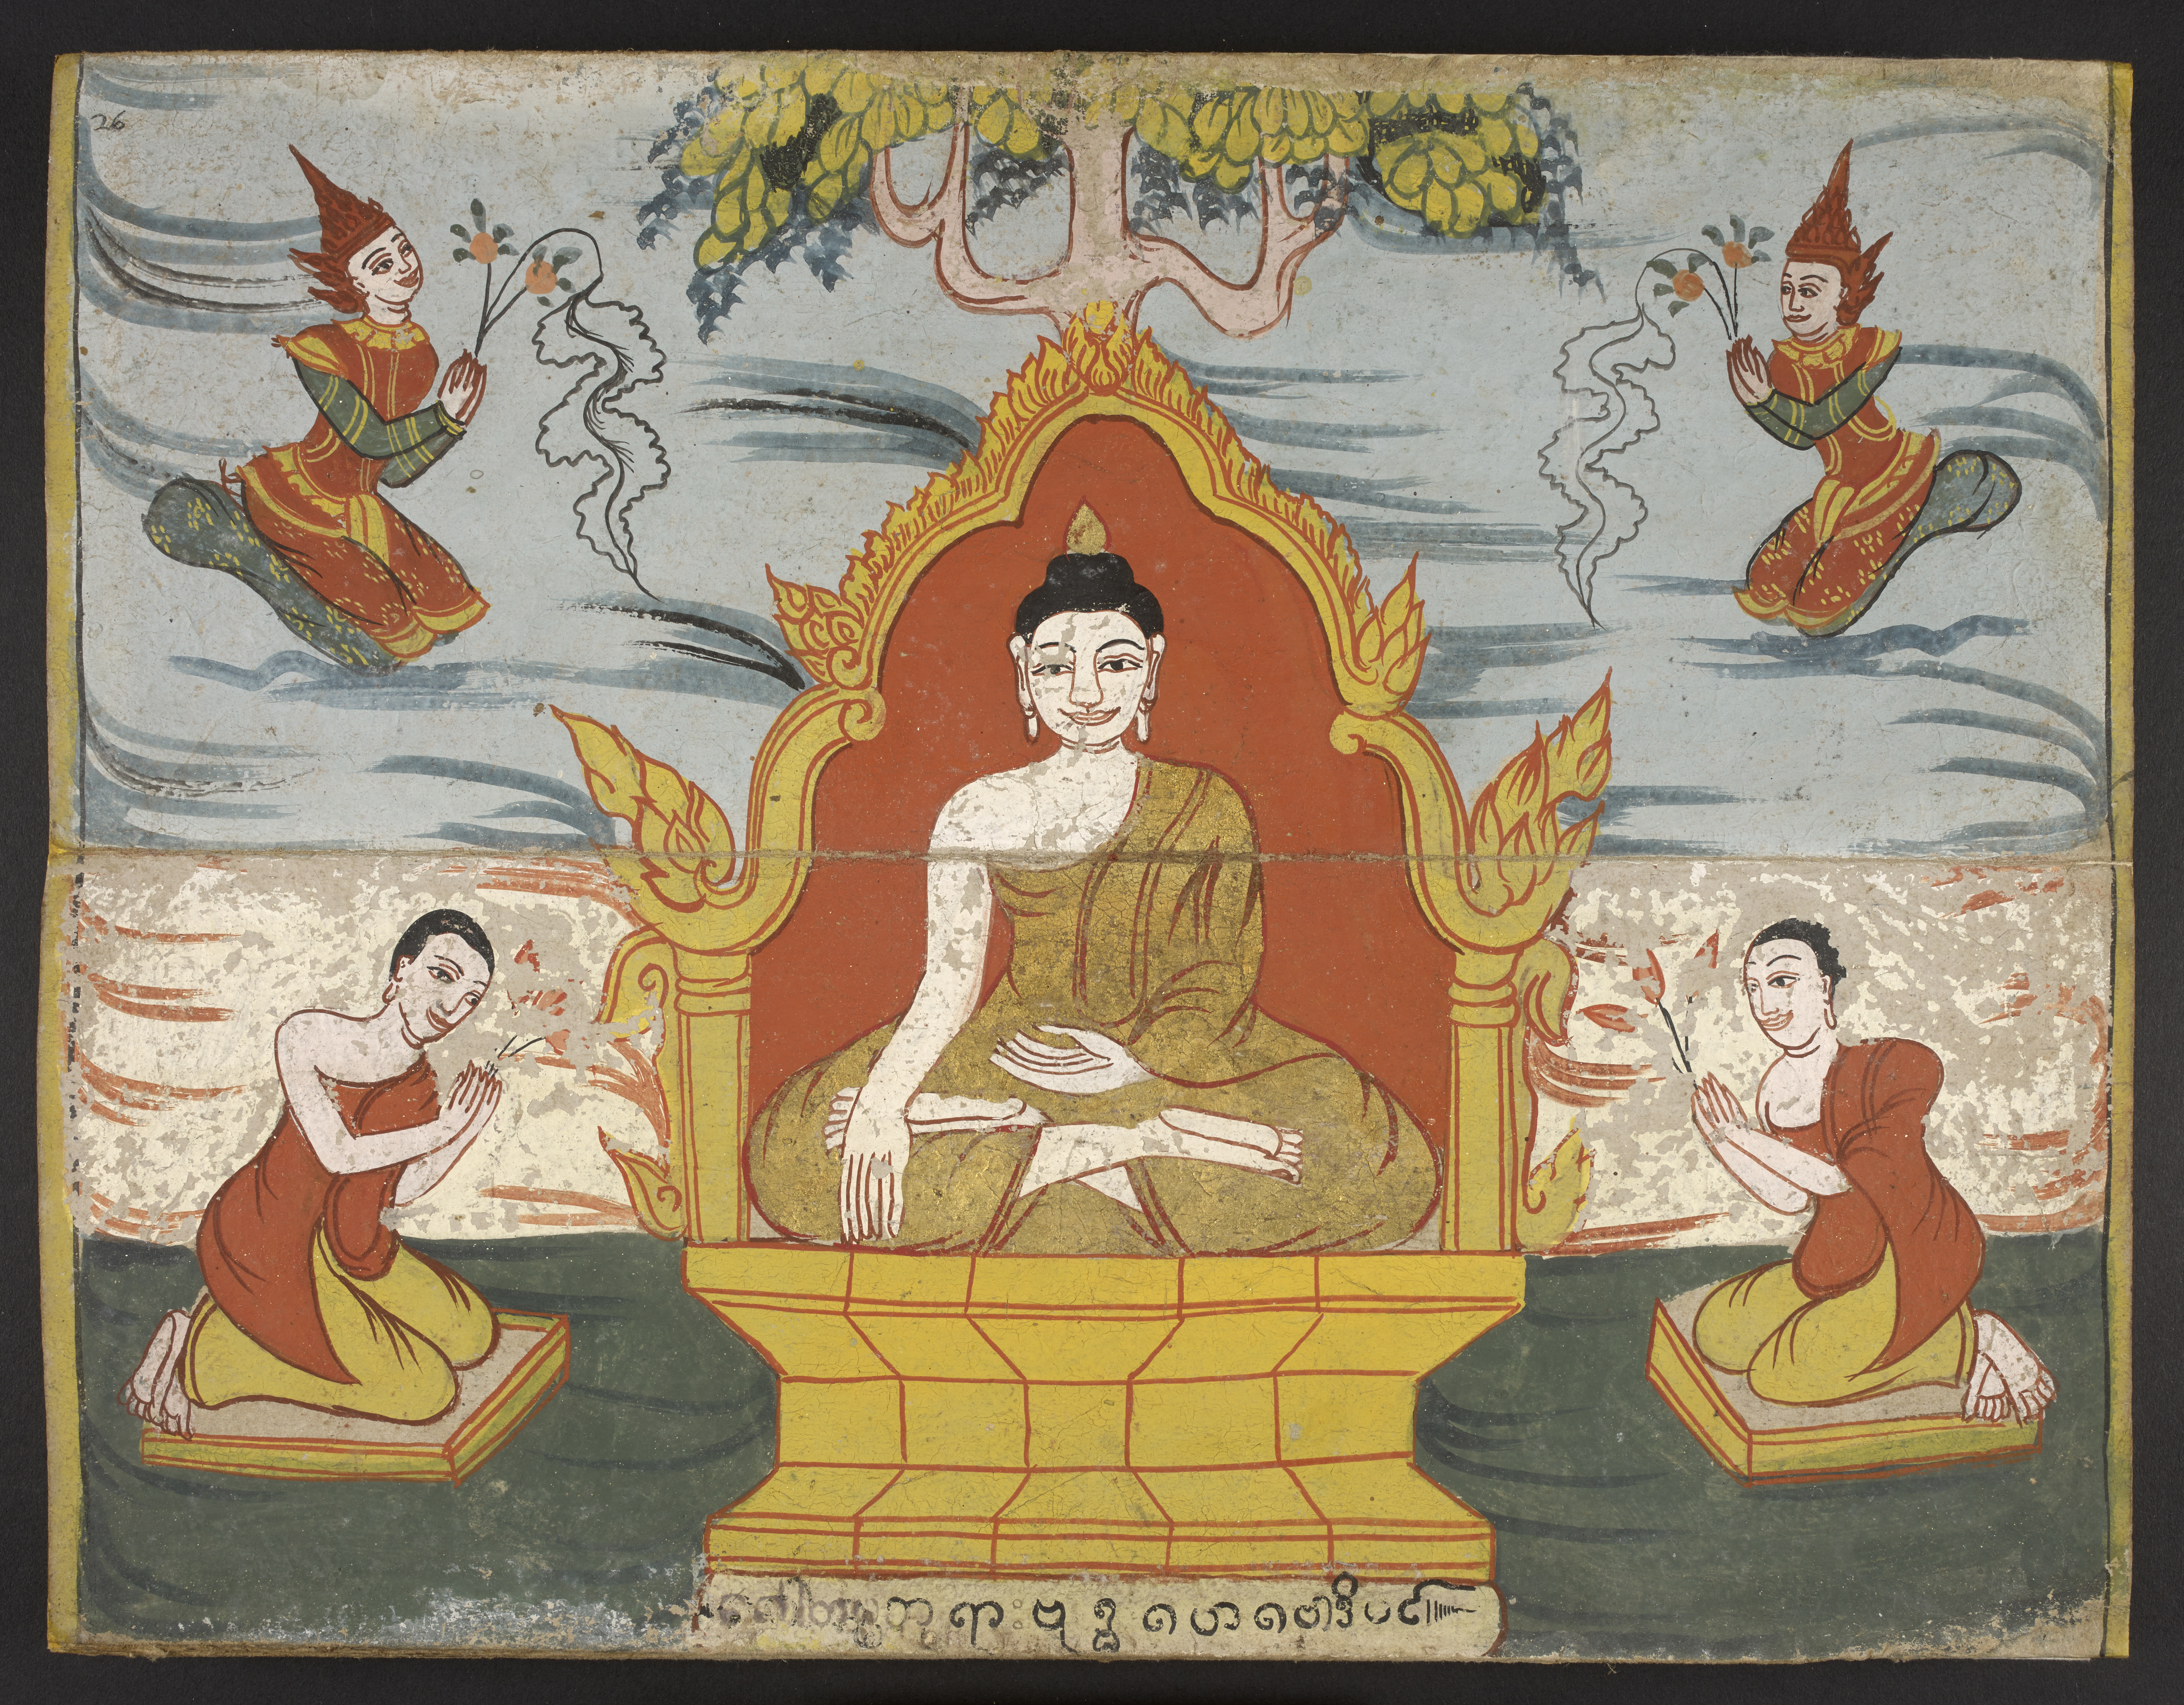 Image from 19th-century Burmese paper folding book containing illustrations of 28 Enlightened Buddhas, with short captions